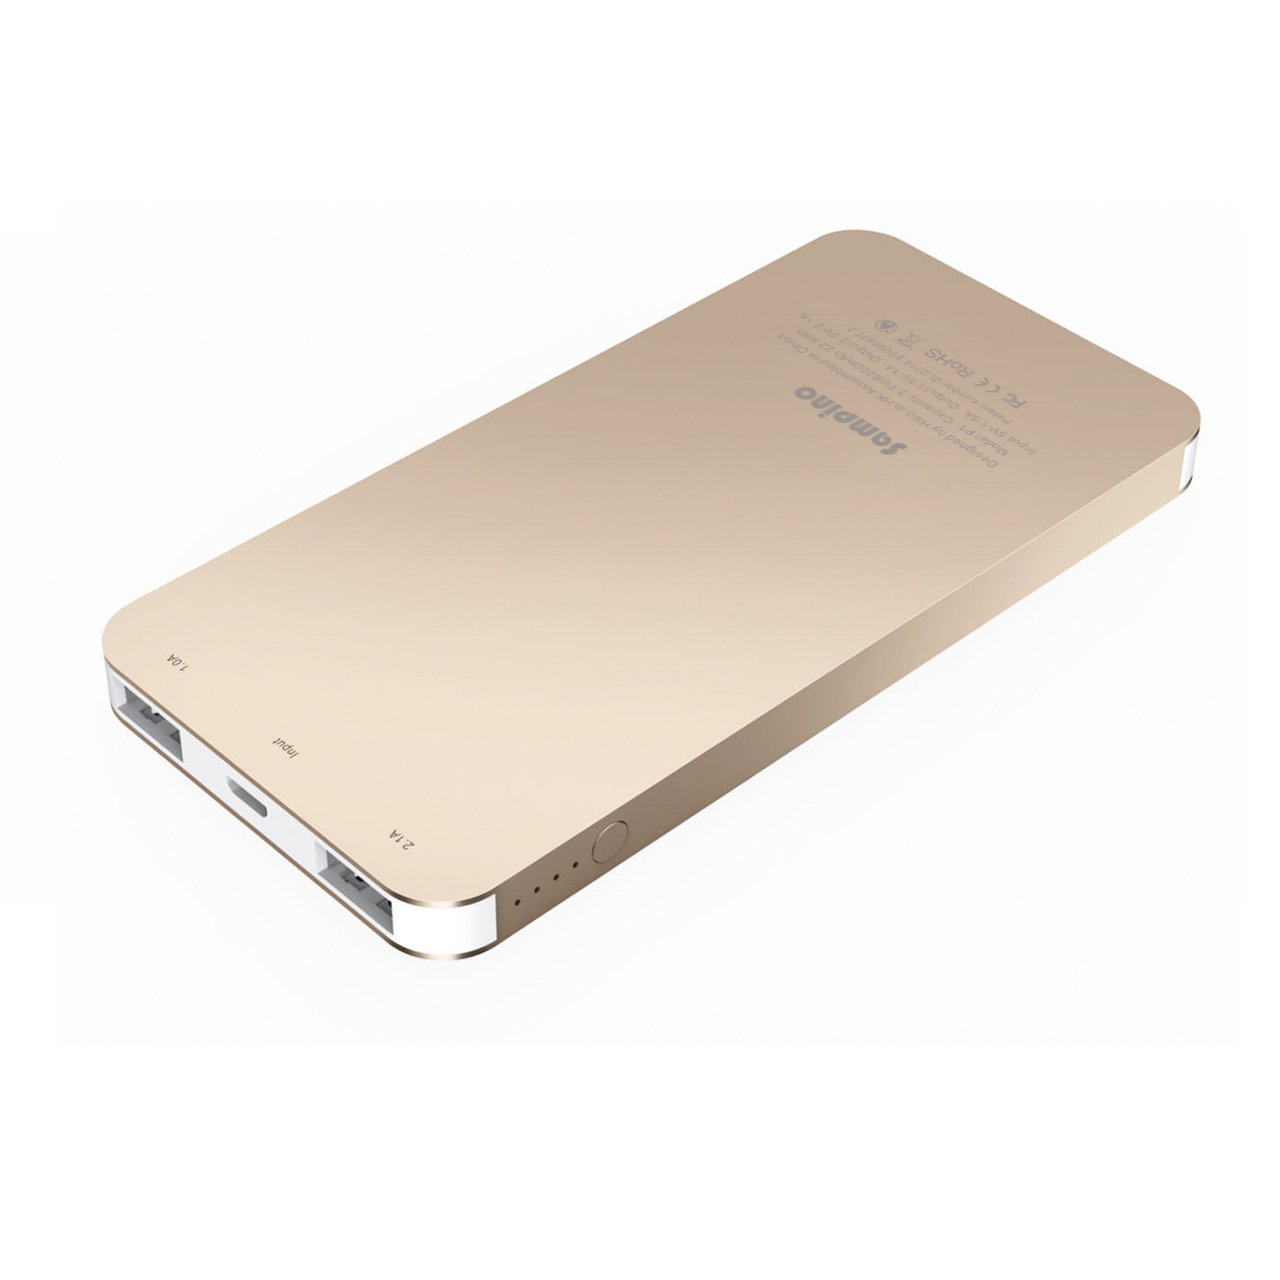 Sampino 6200 mAh Phone Charger Battery for iPhone or Android Pokeman,1.0/2.1A Output External Battery Power Bank Dual USB Ports for iPhone iPad Samsung Blackberry Microsoft HTC Portble DVD (Gold)